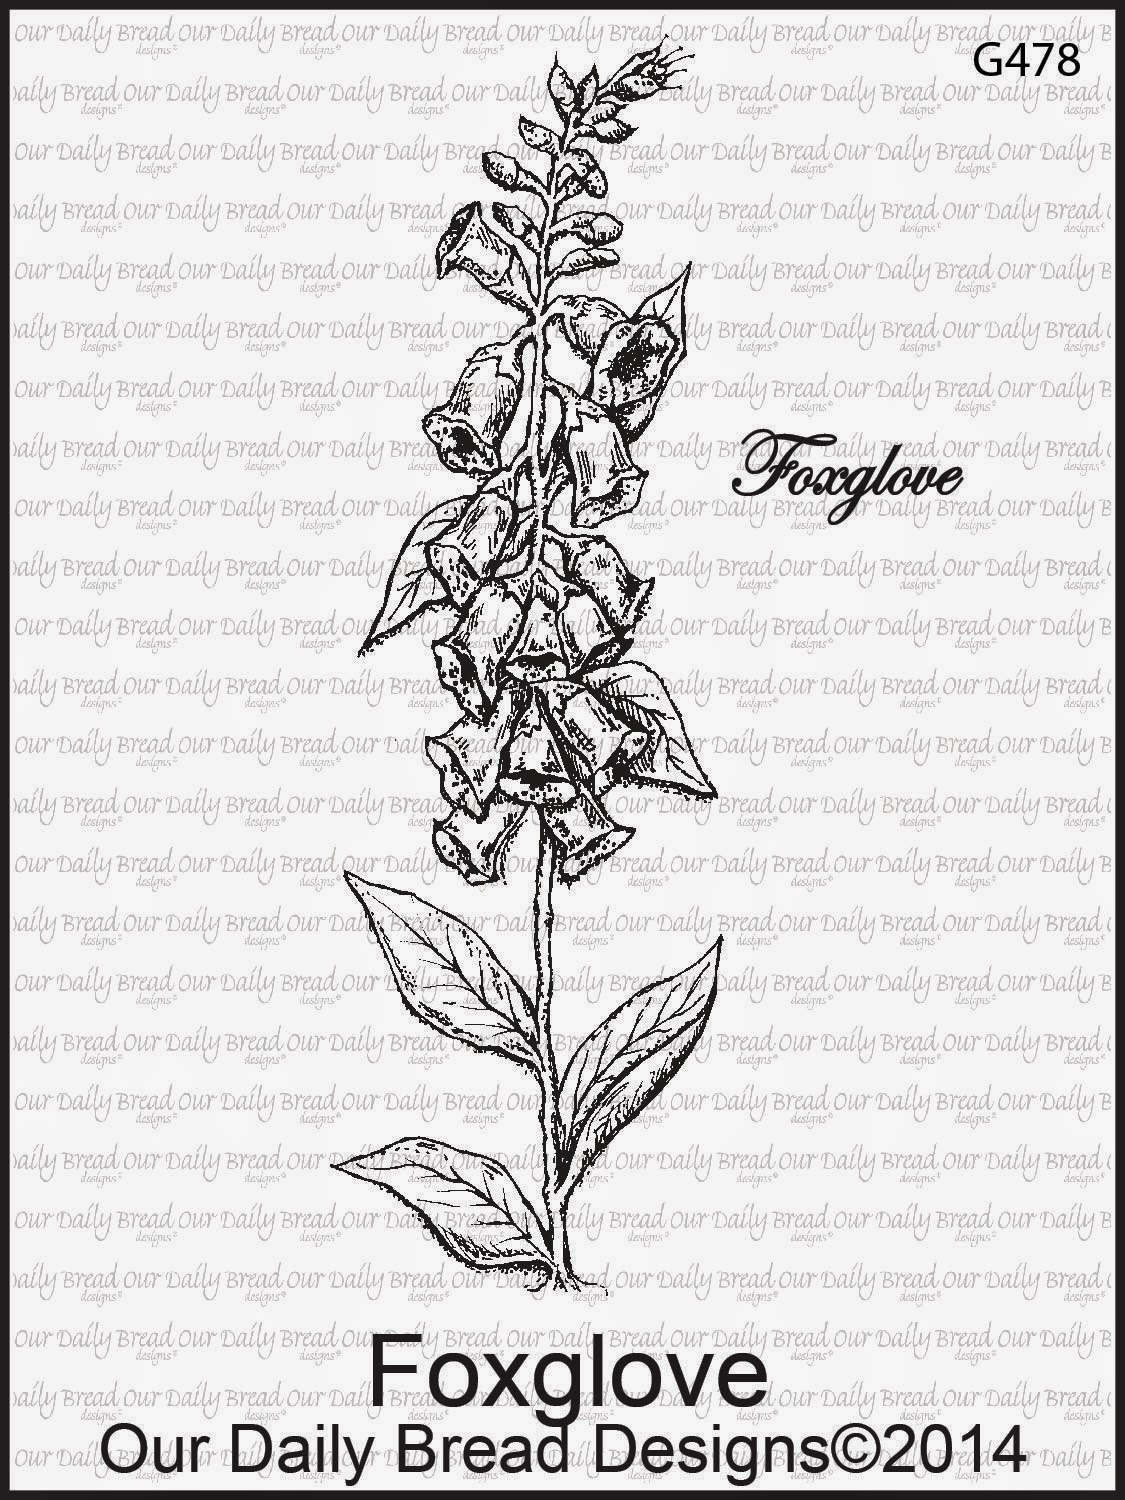 Stamps - Our Daily Bread Designs Foxglove